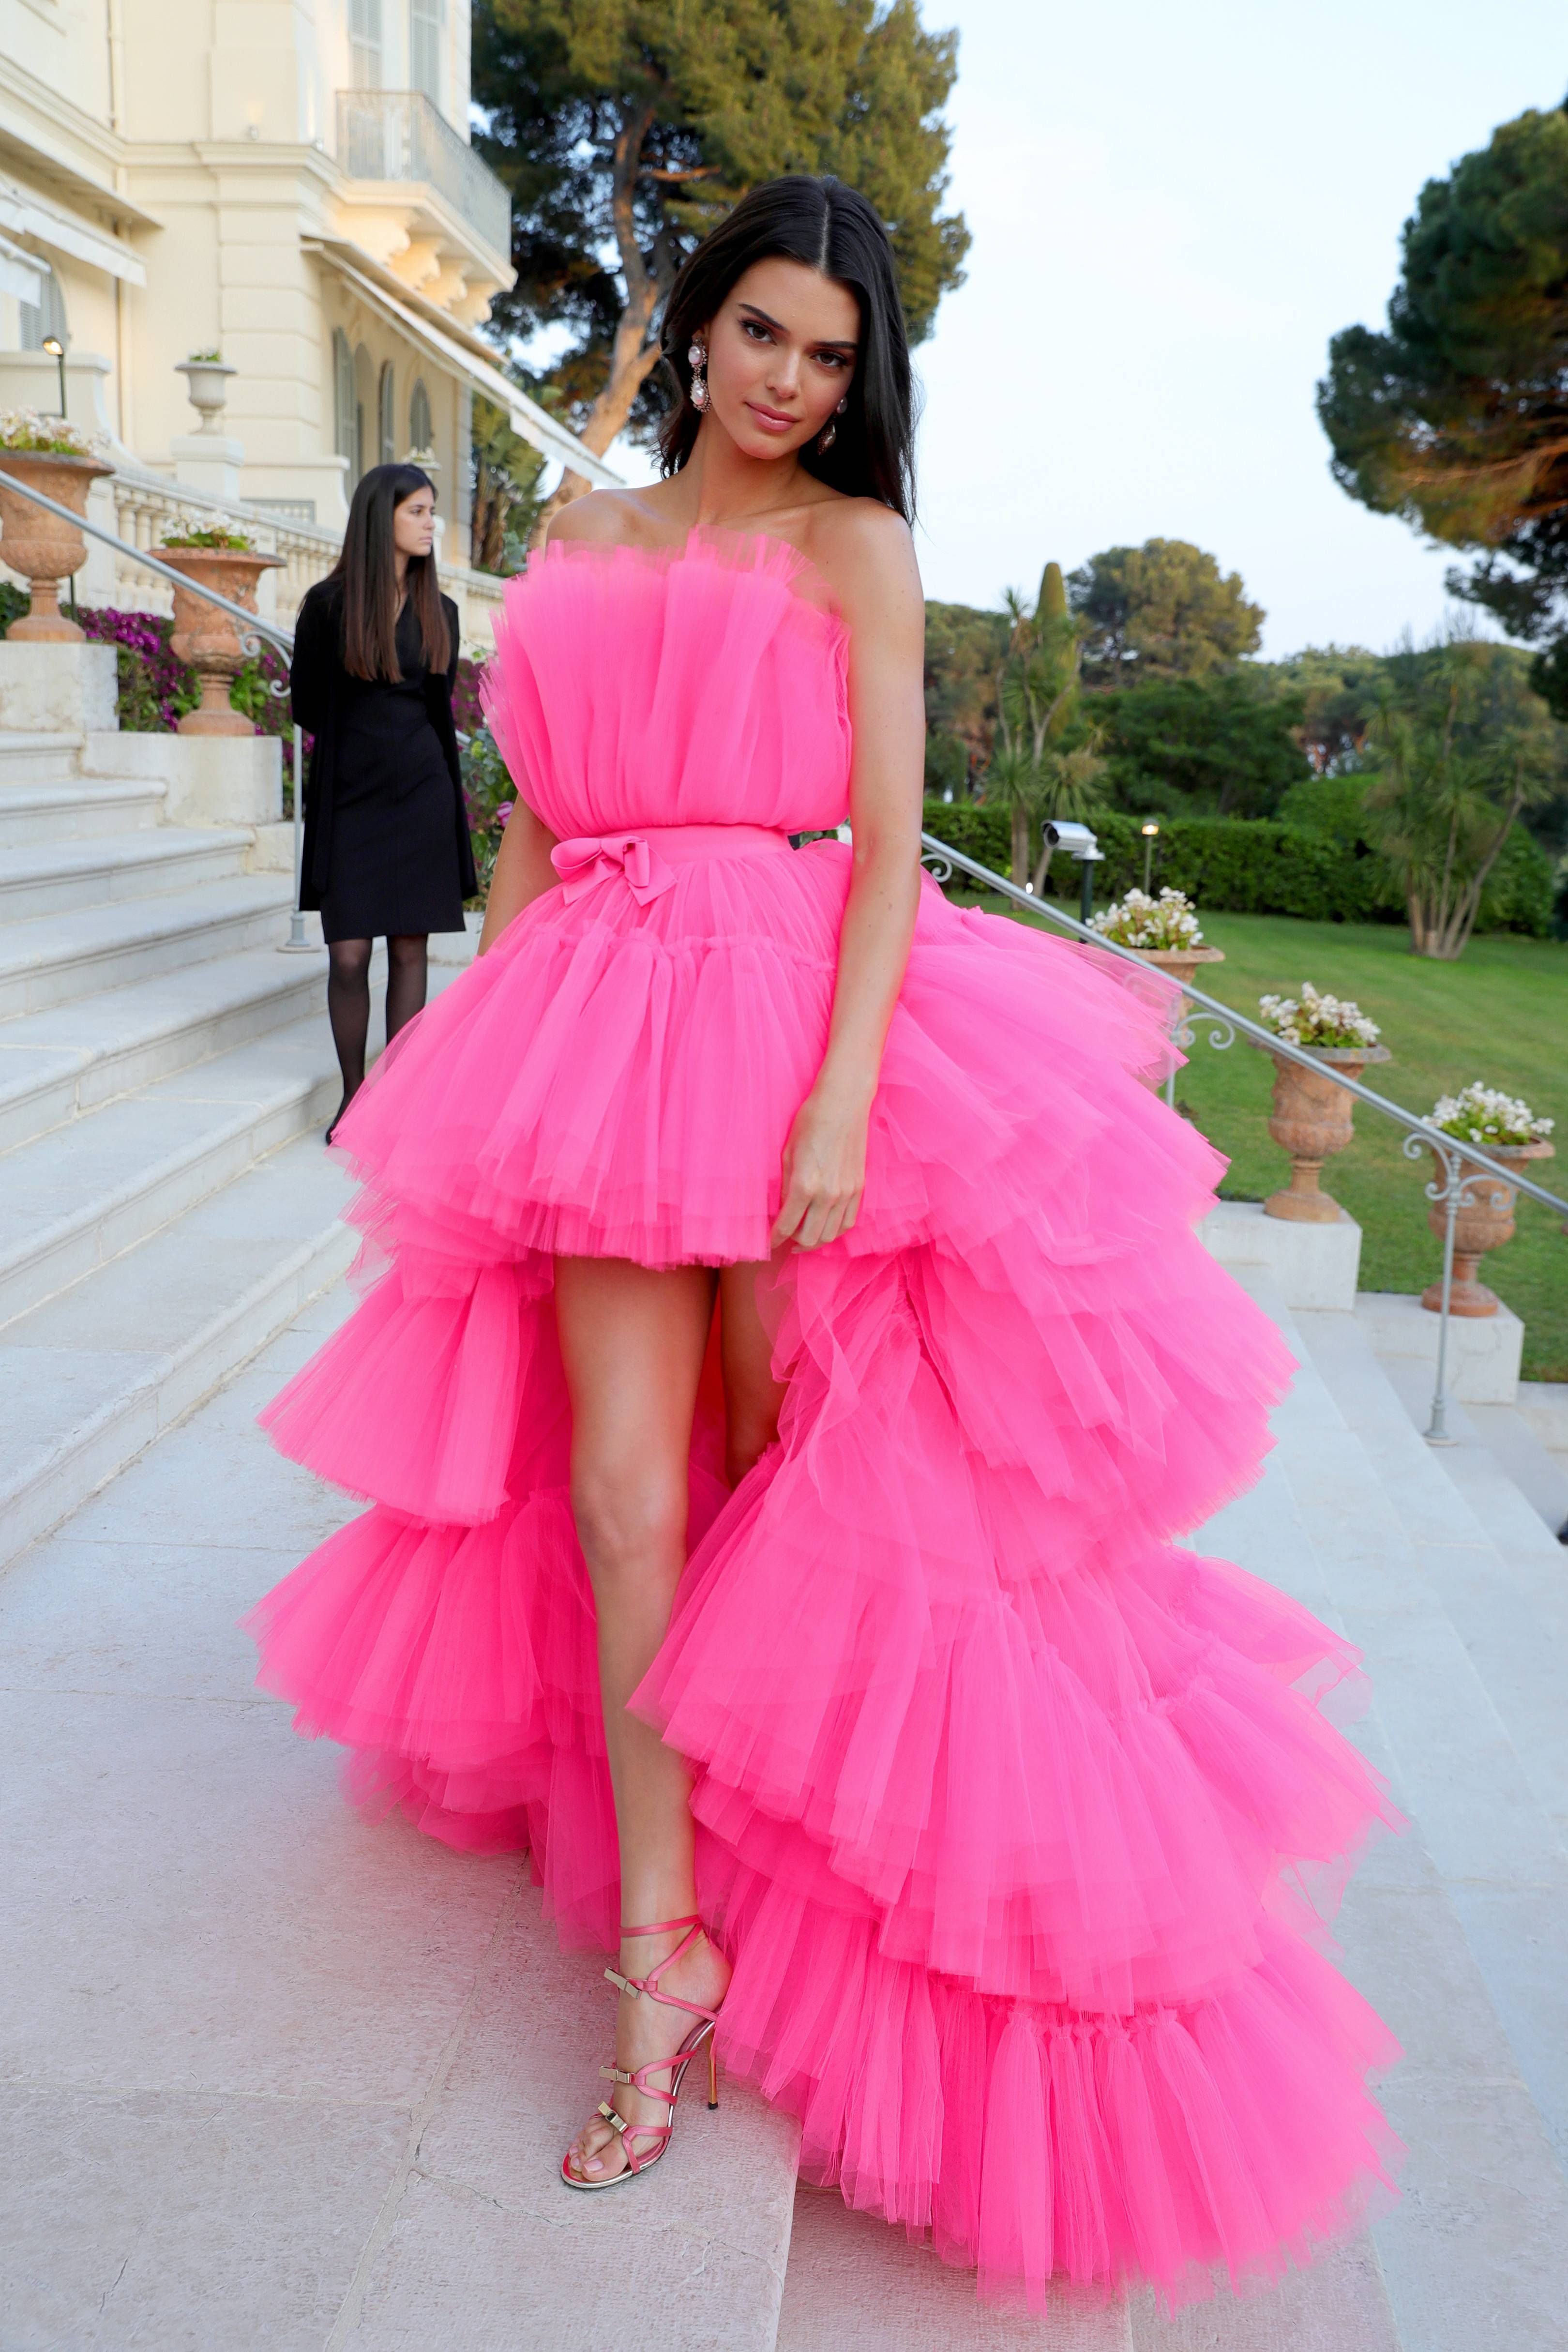 Cannes Film Festival Red Carpet 2019 Famous people